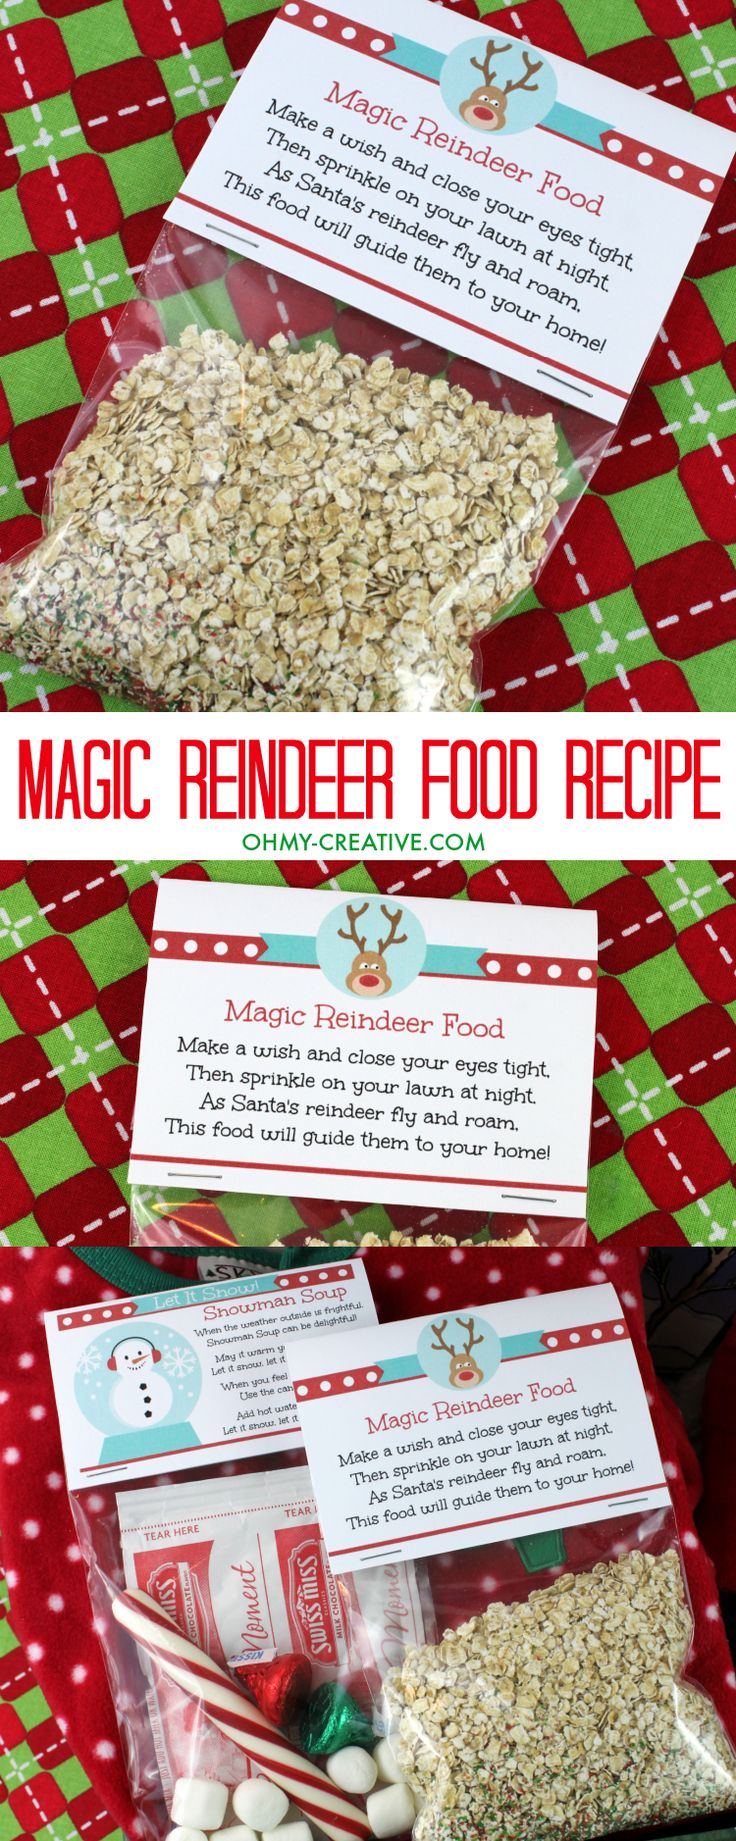 Magic Reindeer Food Recipe and Printable